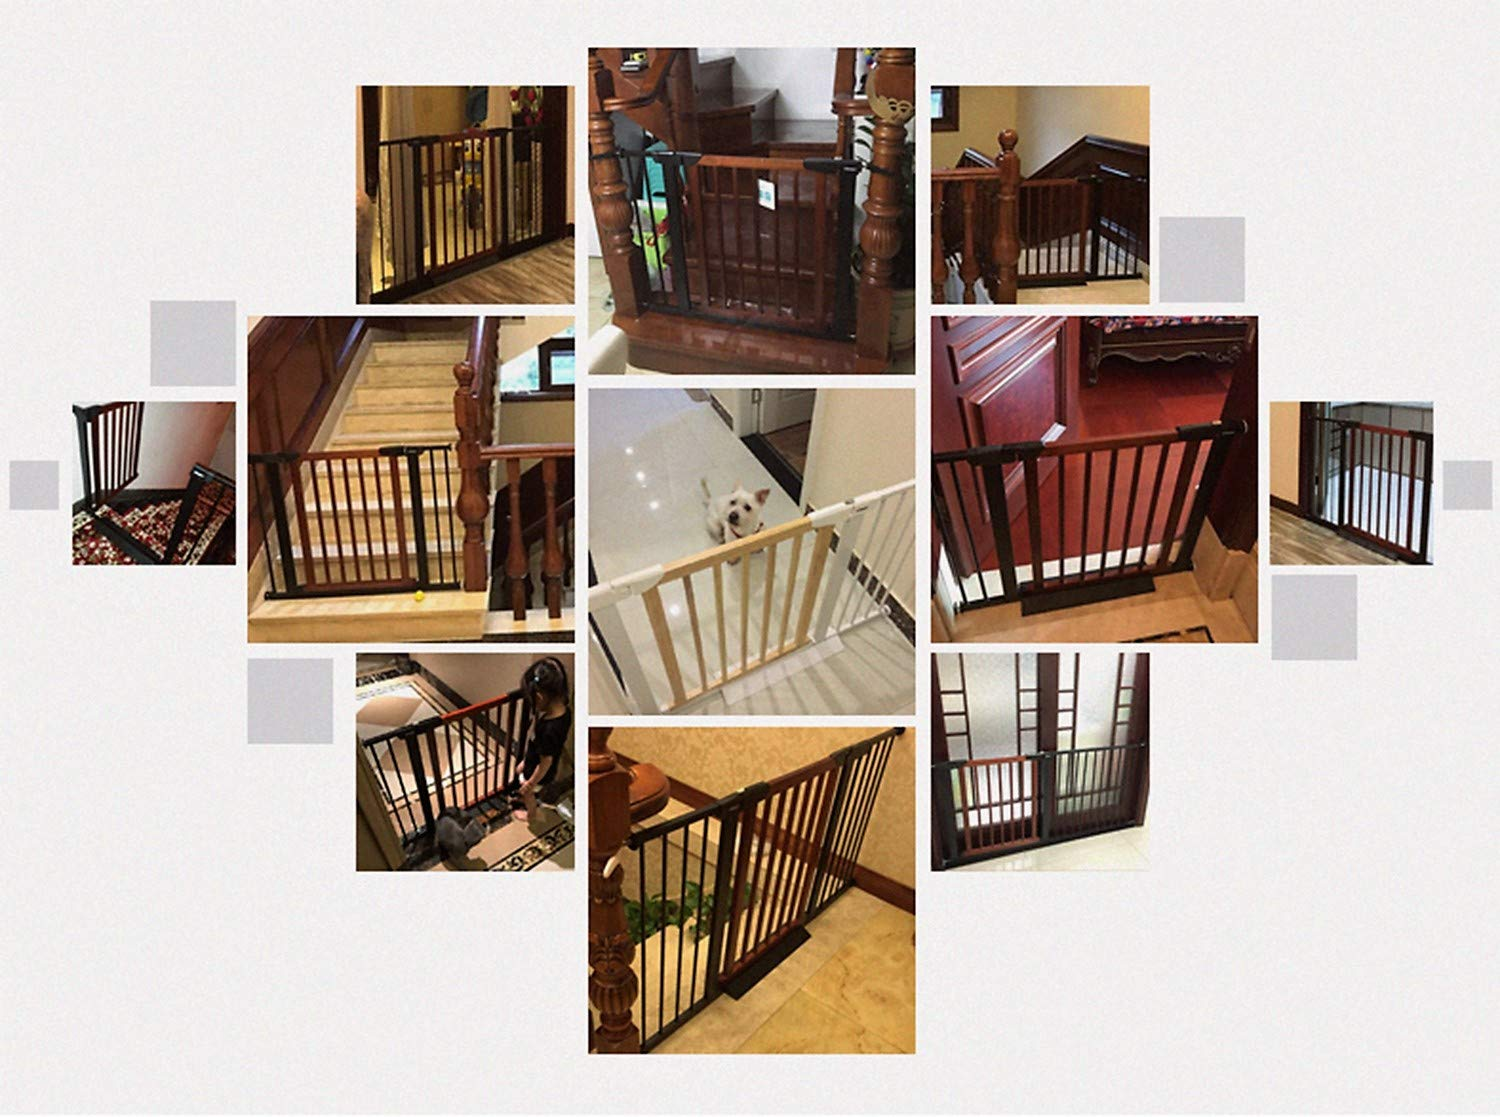 Baby Gate/Baby Gate for Stair with Banisters/Pet Gate, Fit Stairway or Doorway, Extendable, Auto Close, Pressure Mount (Wooded) by KINGBO (Image #7)